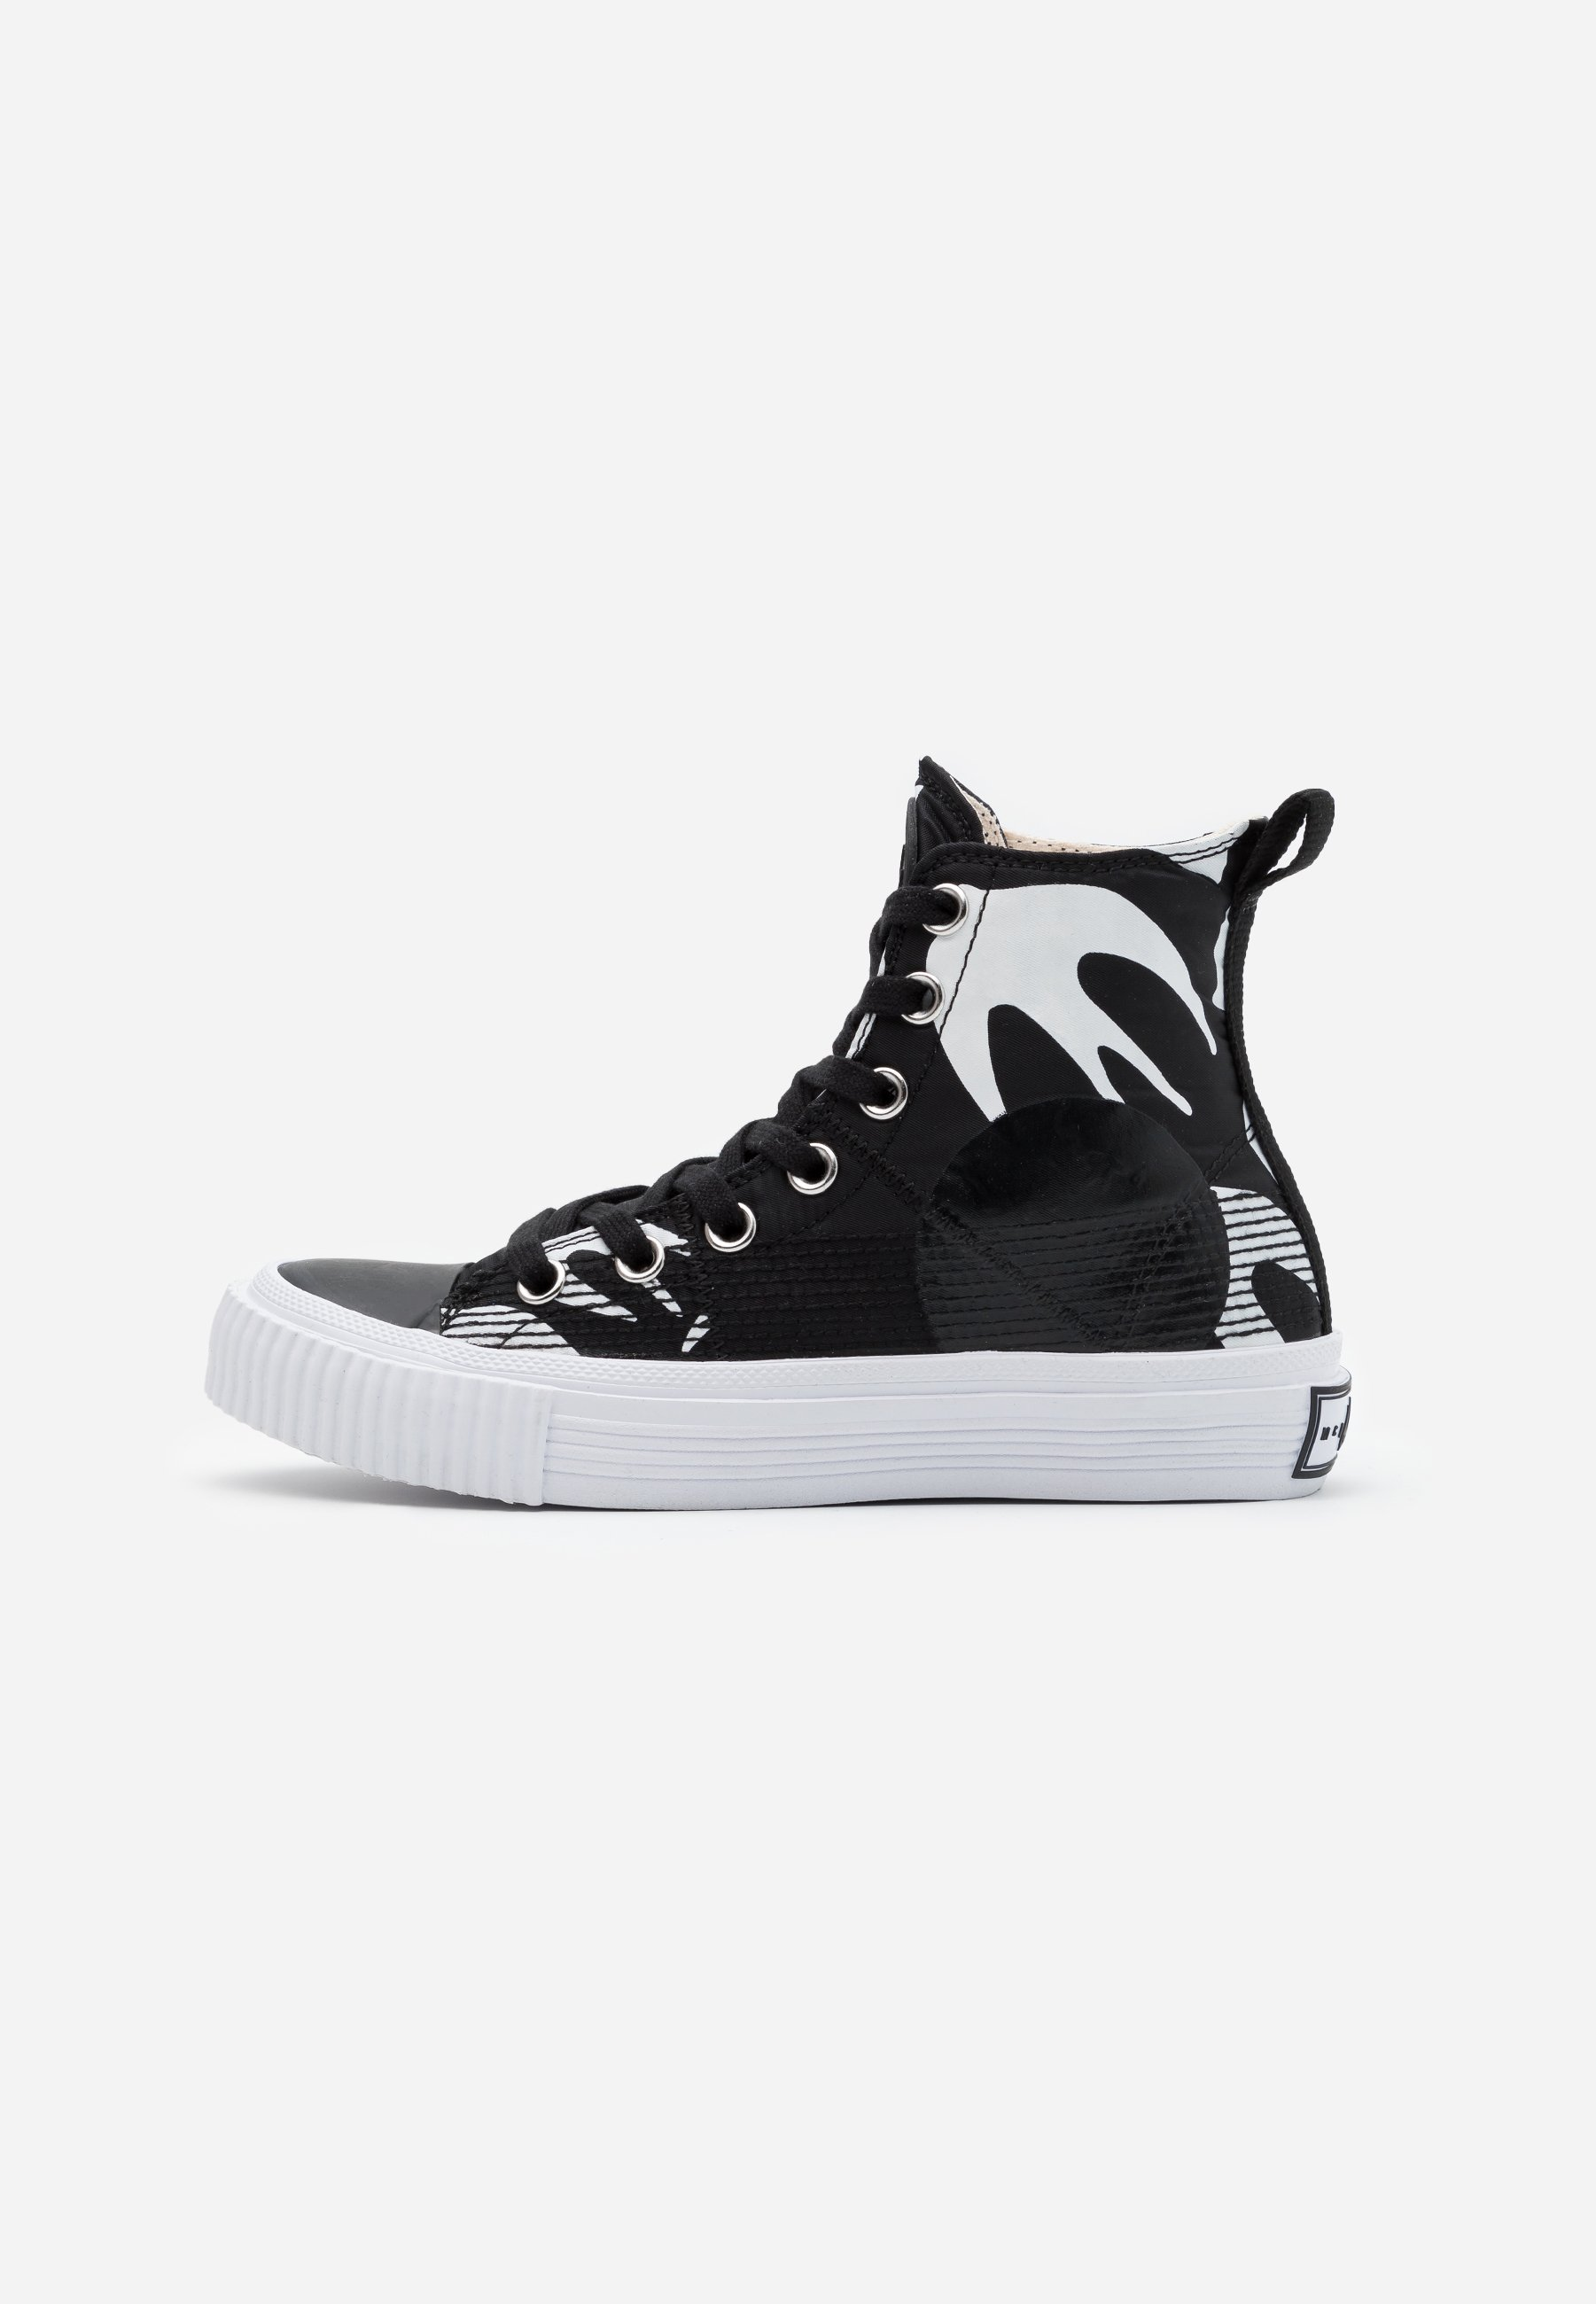 Mcq Alexander Mcqueen Swallow Cut Up High Top Trainers Black White Black Zalando Co Uk